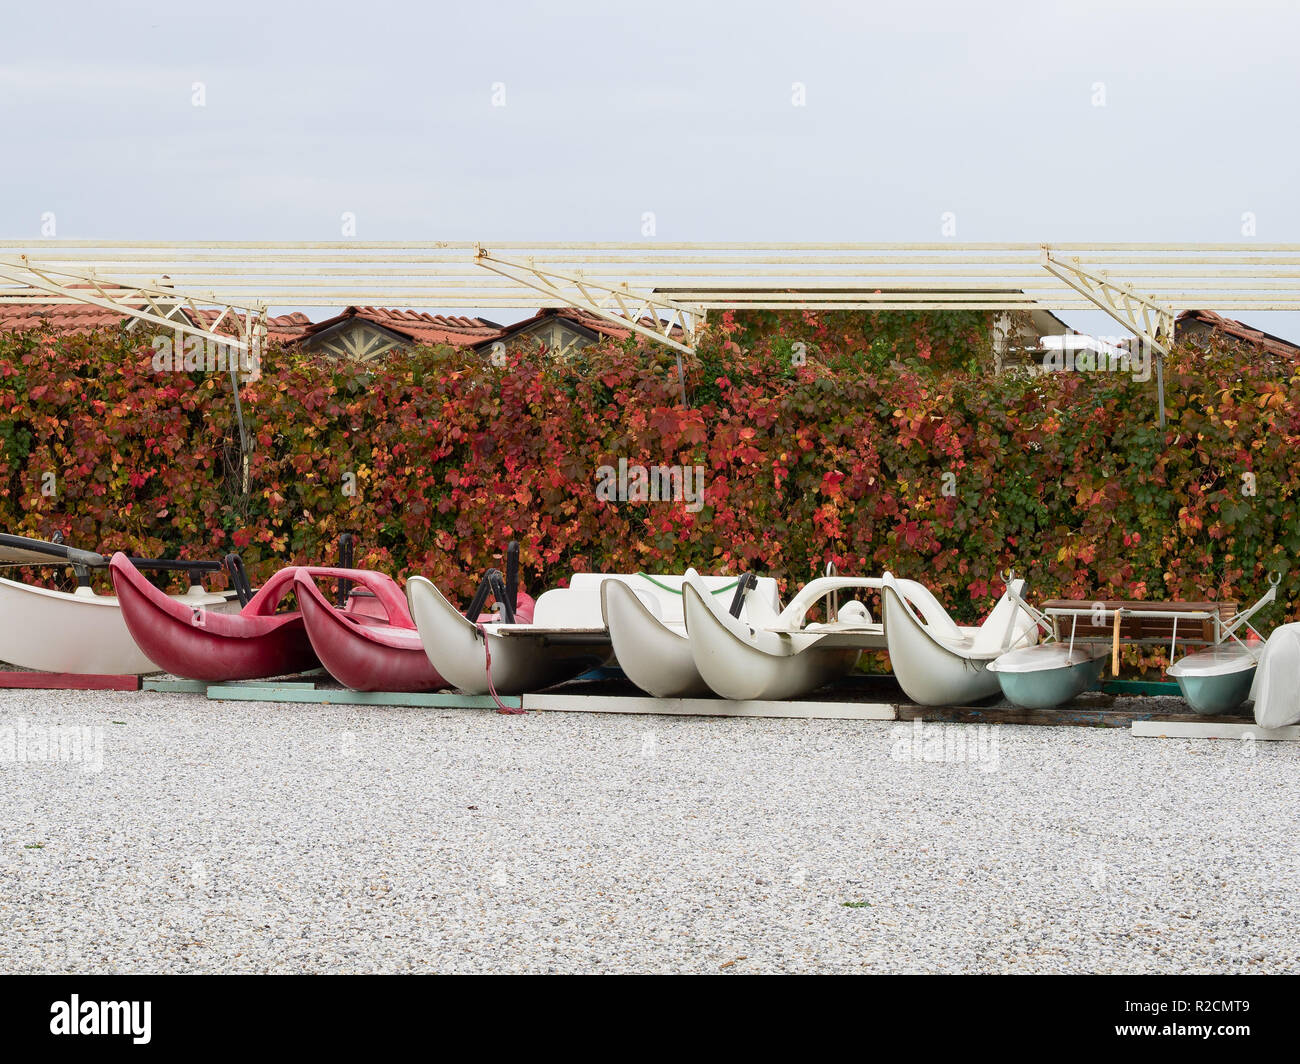 small plastic rowing boats storaged in a row near a hedge of Virginia creeper with red leaves during the fall,  waiting for summer holidays - Stock Image